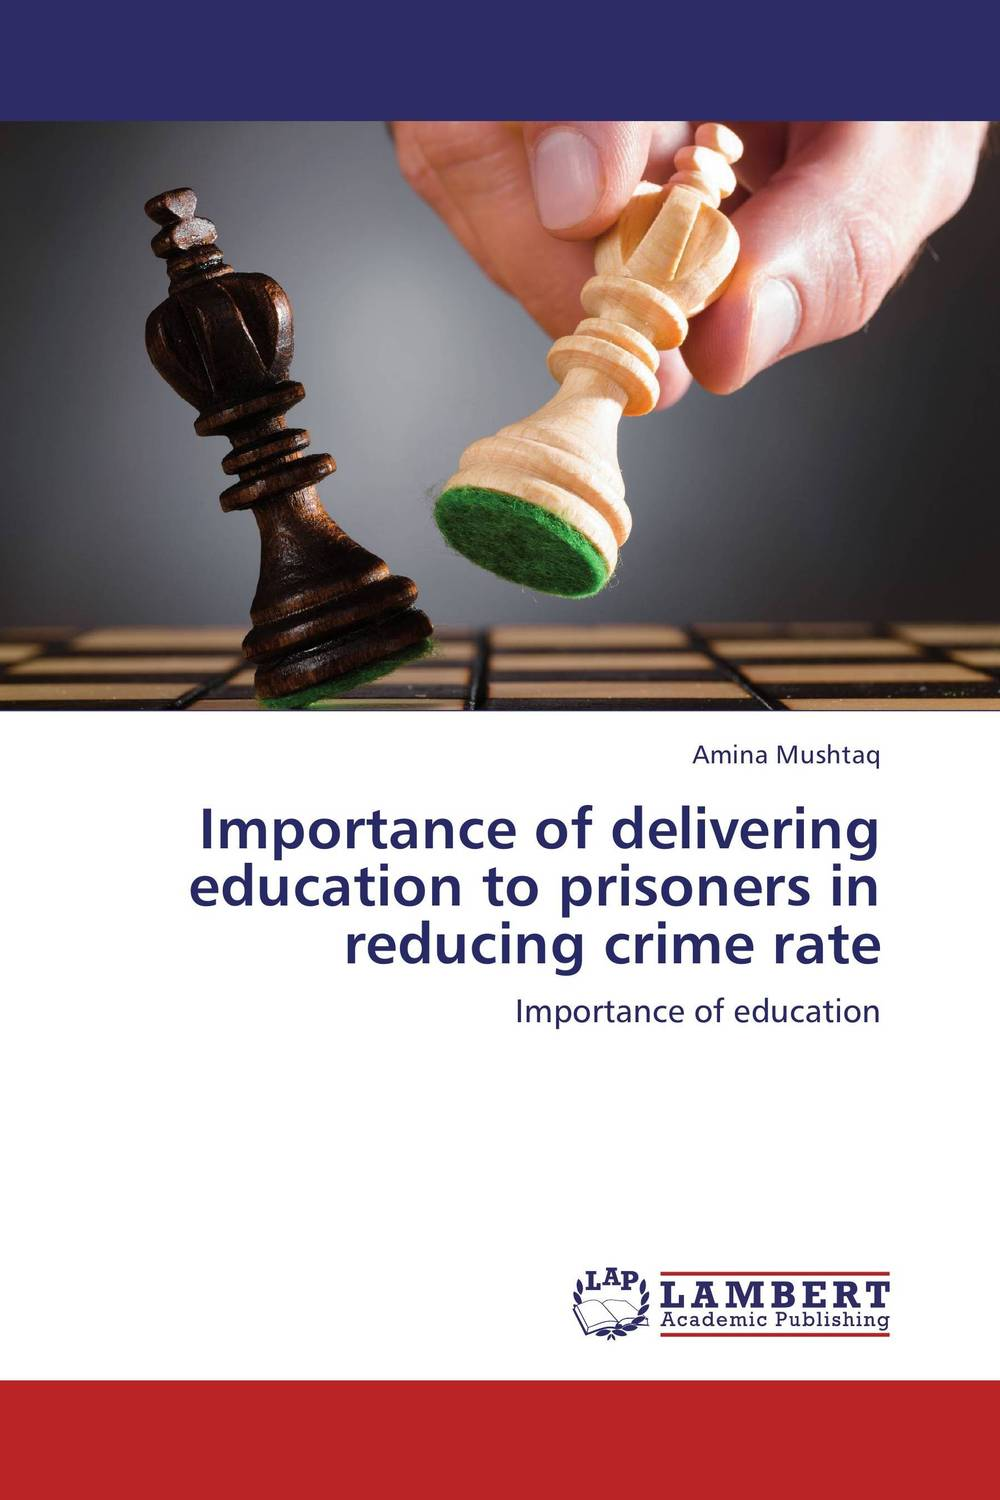 Importance of delivering education to prisoners in reducing crime rate education training and human rights of the prisoners